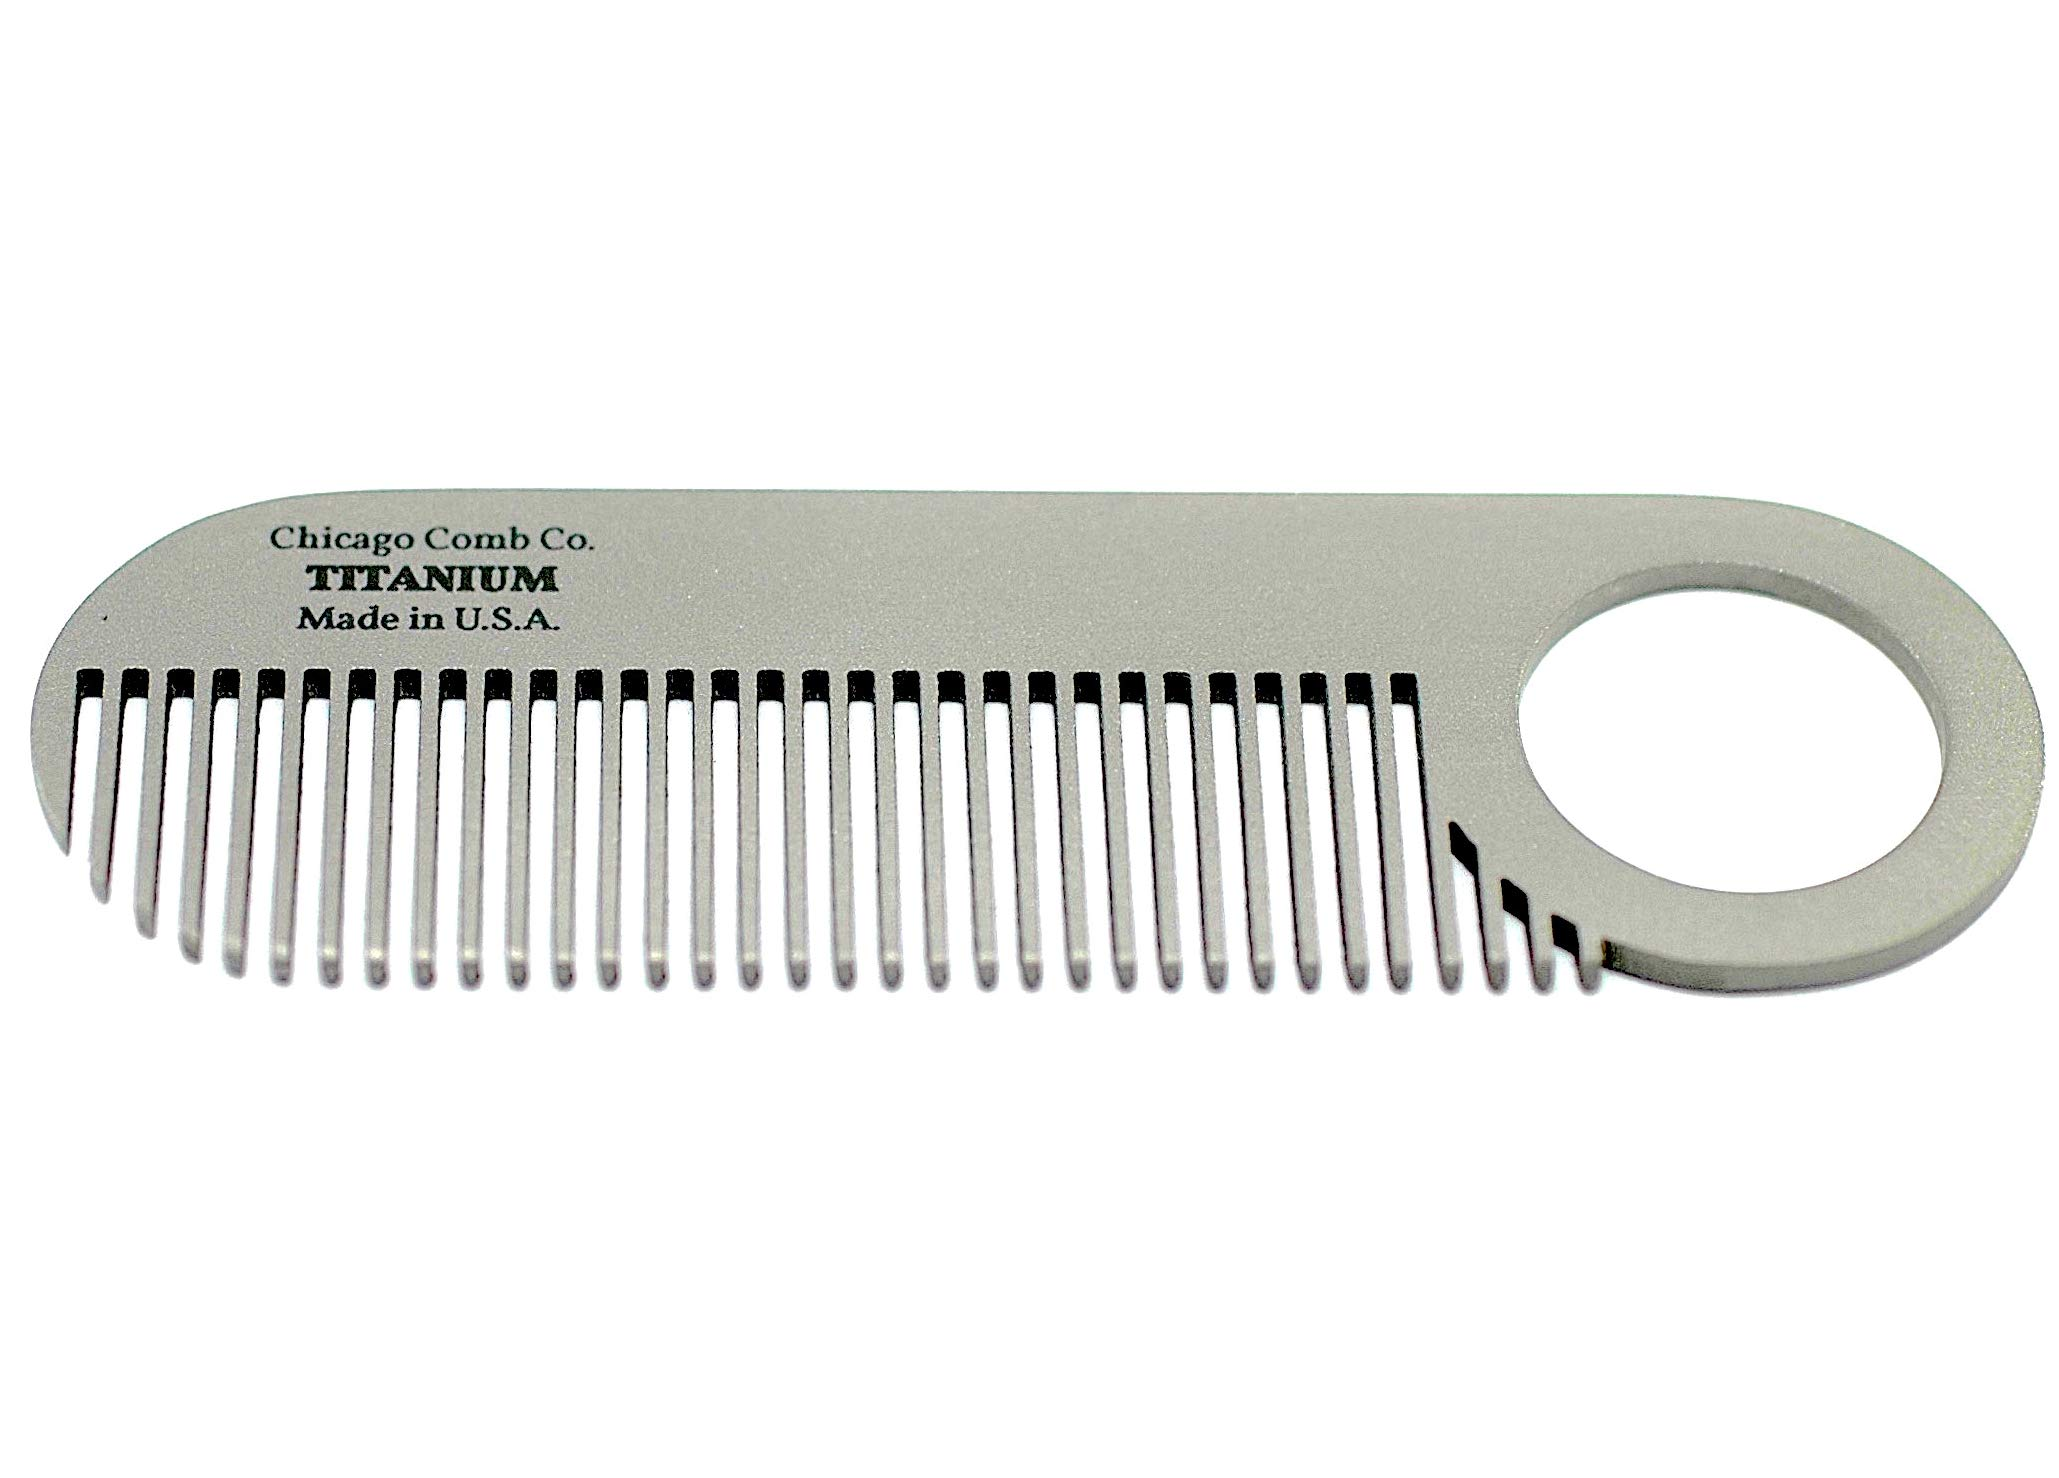 Chicago Comb Model 2 Titanium, Made in USA, Ultimate Daily Use Beard & Mustache comb, Pure American Titanium, Anti-Static, Patented Design, Ultra-Smooth, Strong, Light, 4 in. (10 cm) by Chicago Comb